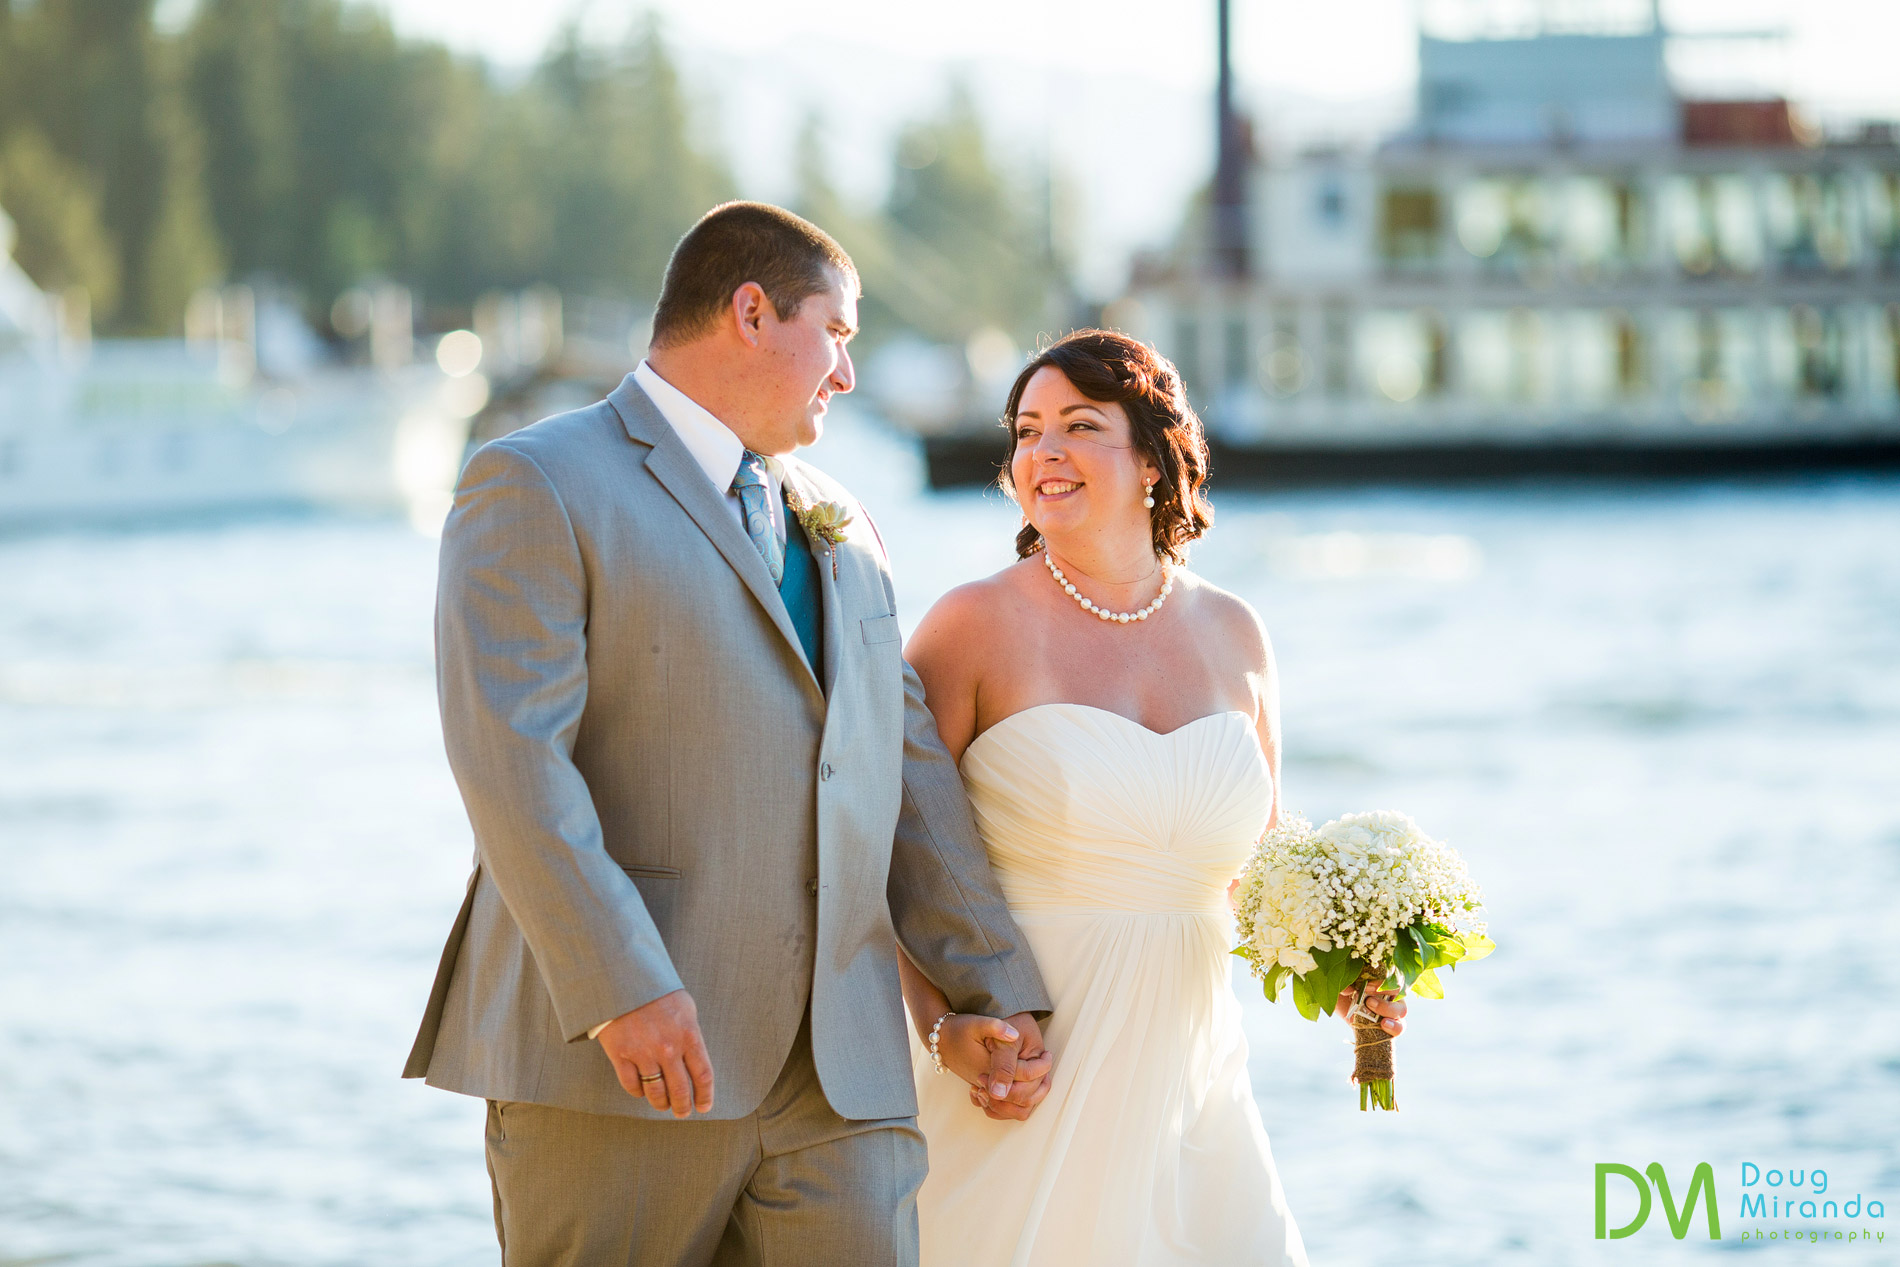 zephyr cove beach wedding